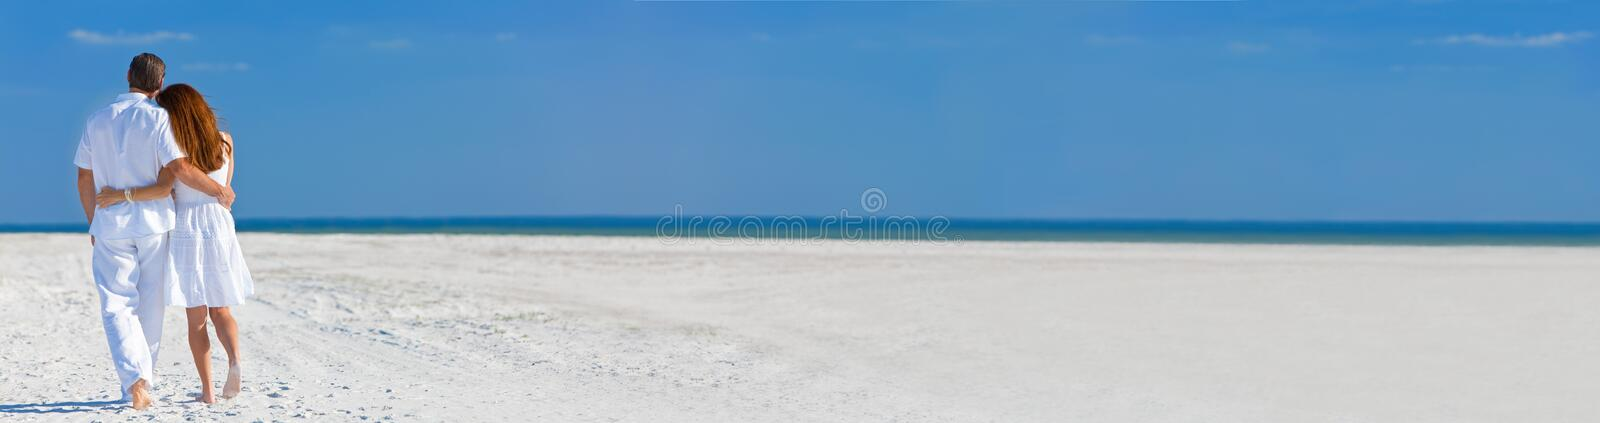 Panorama Man Woman Couple Walking on An Empty Beach Panoramic Web Banner stock images